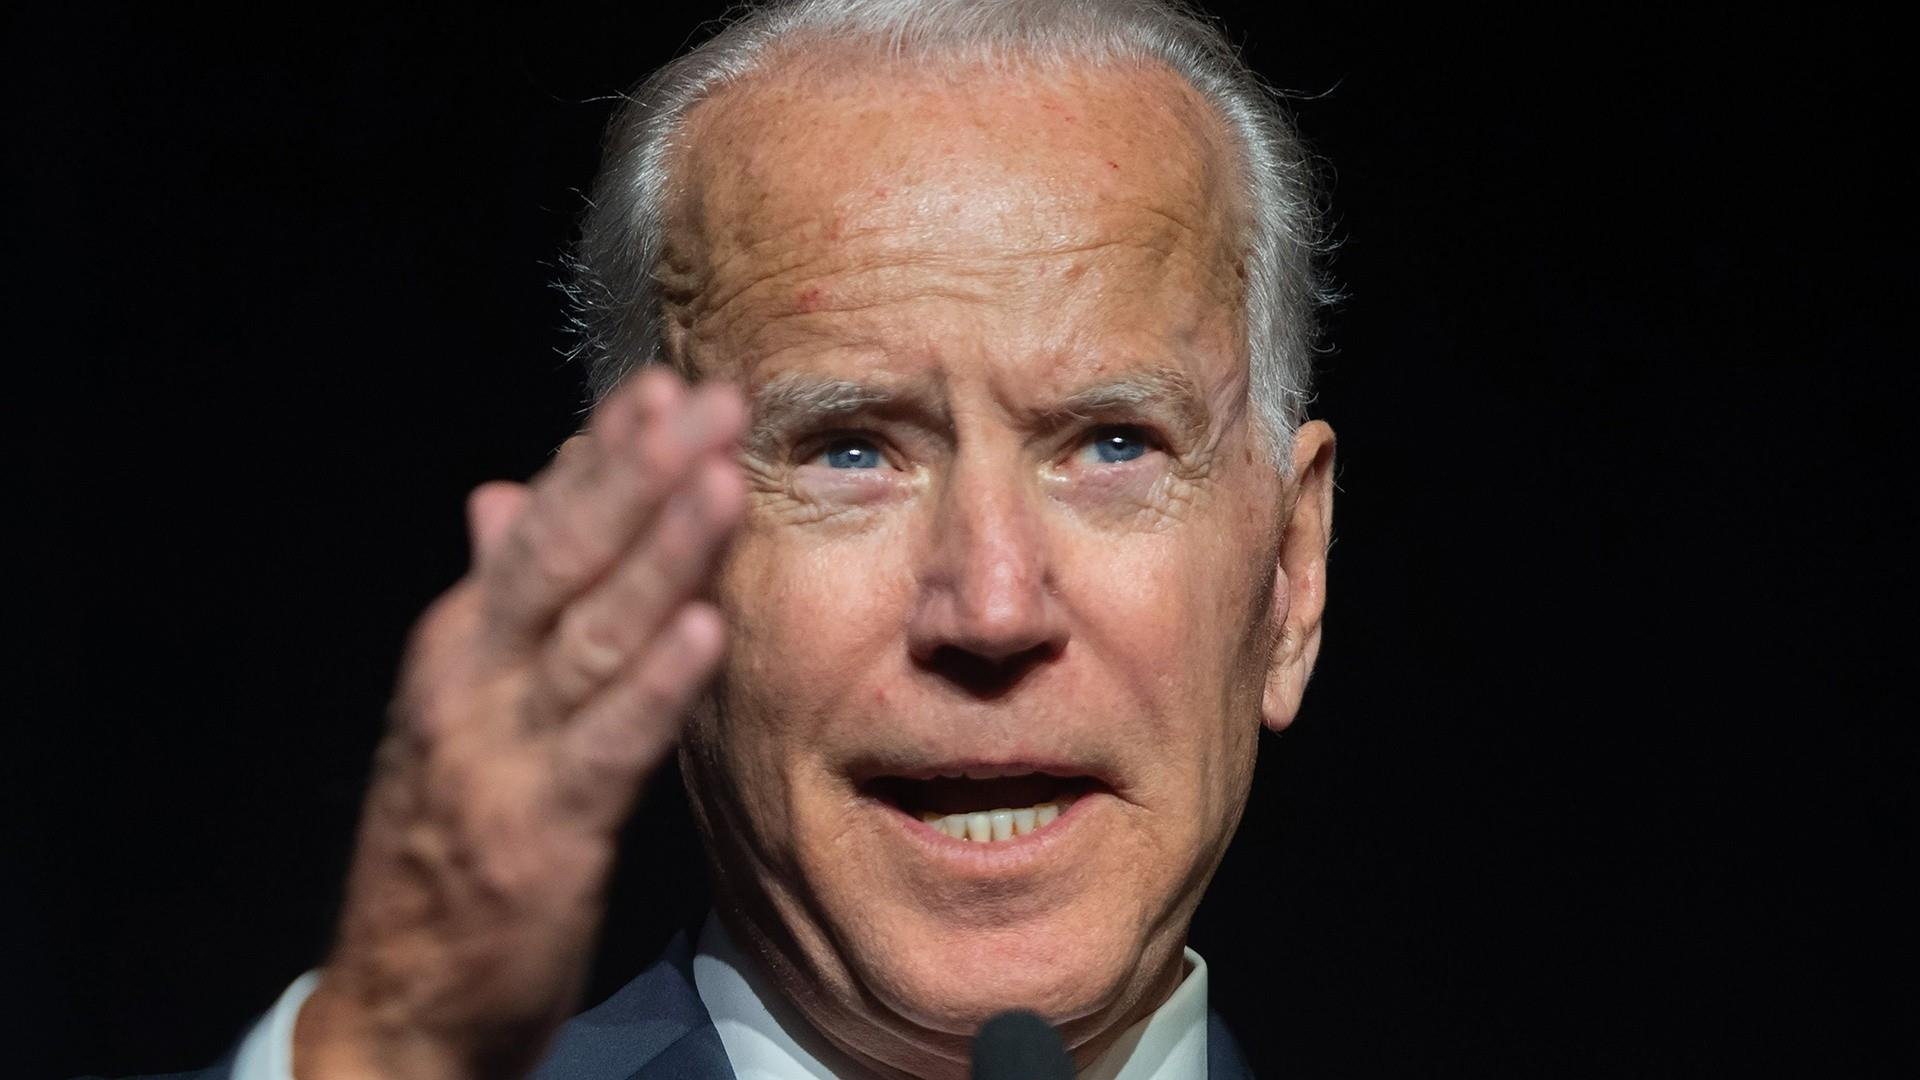 Biden nearly declares his candidacy with a slip of the tongue